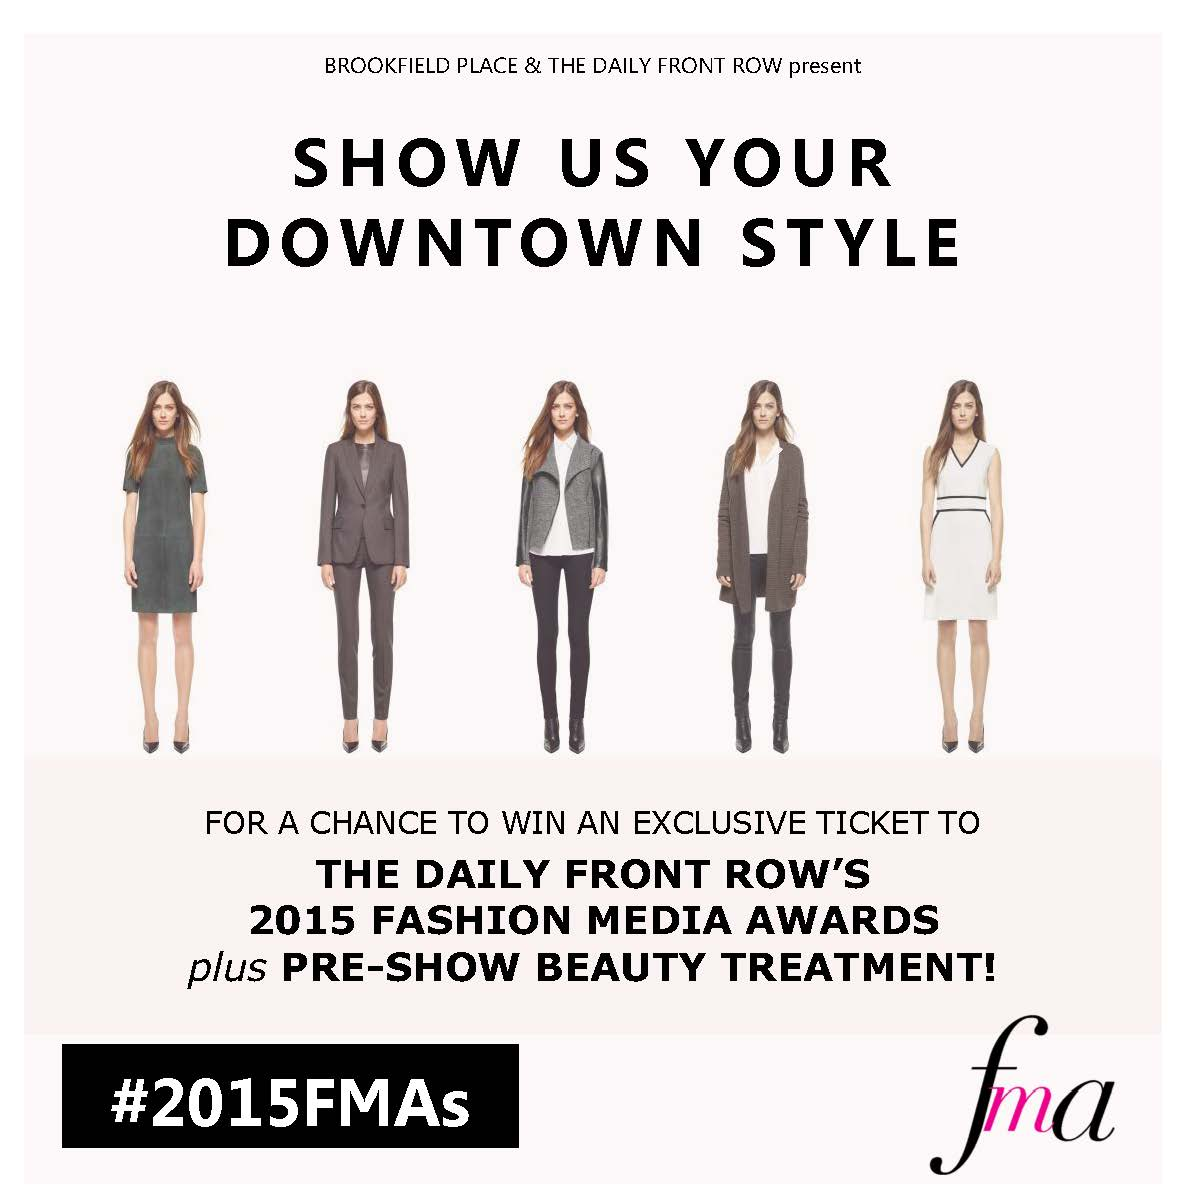 . @BrookfieldPLNY is giving you a chance to to win a ticket to the #2015FMAs! http://t.co/NIzATk71Cj http://t.co/T4KHu6IScr